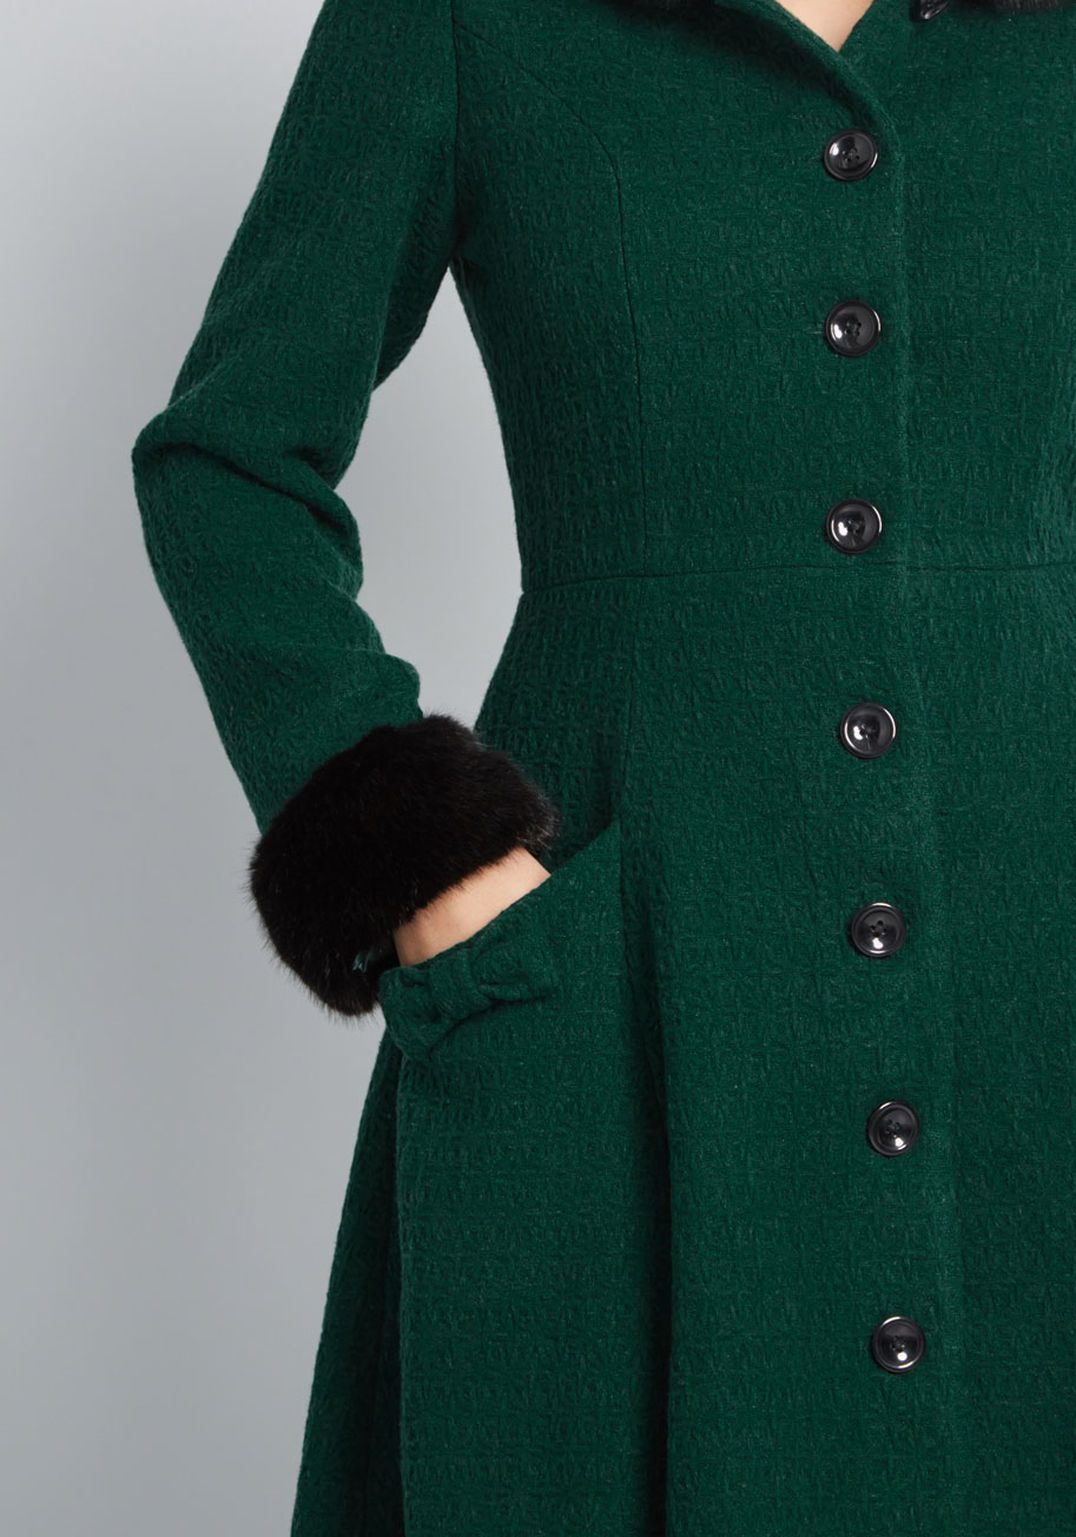 77b4fc5388a Collectif x MC Winsome Warmth Fit and Flare Coat in Emerald Green